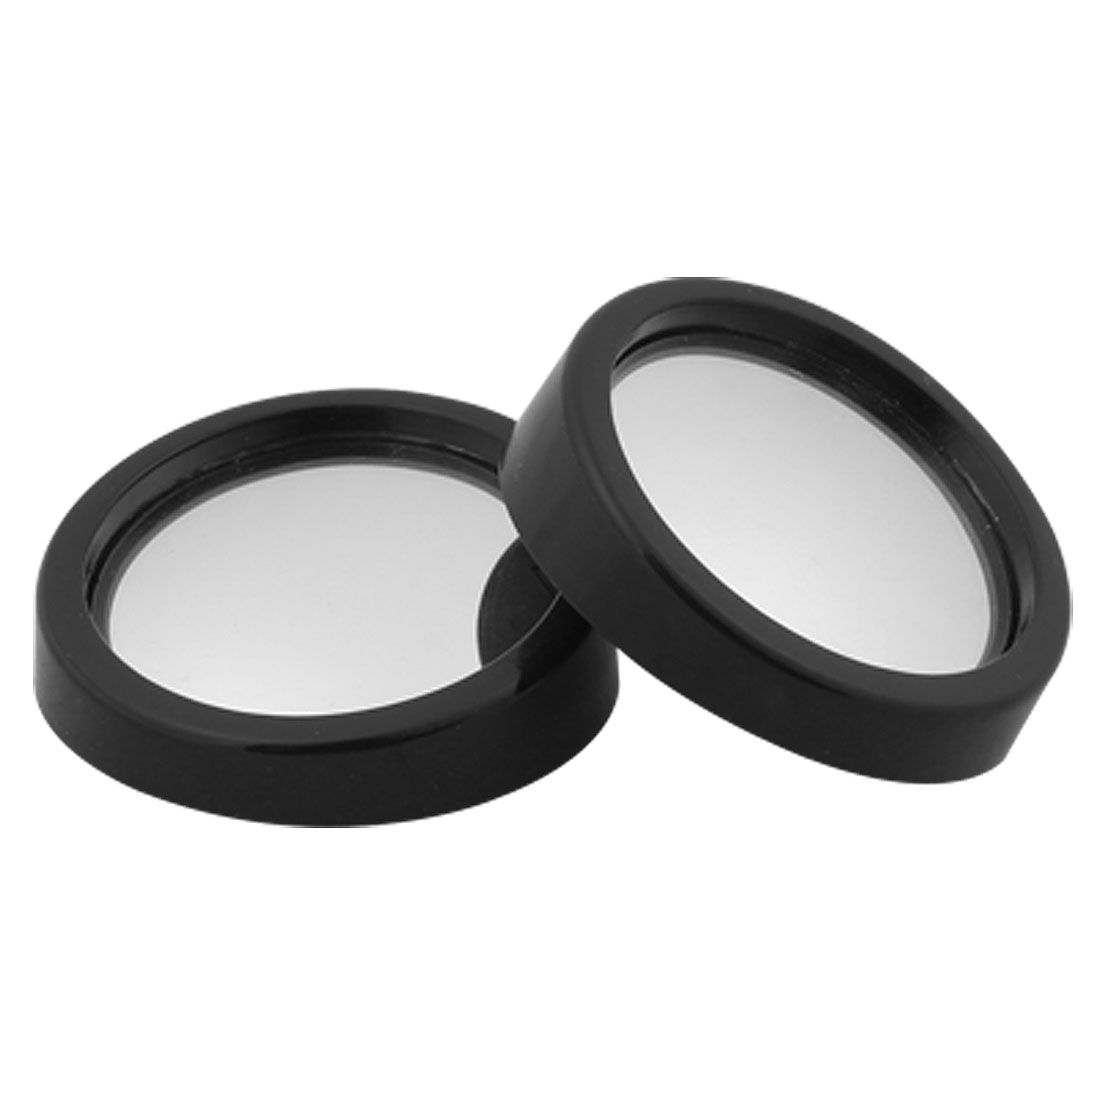 2 Pieces Mini Black Convex Round Blind Spot Safety Mirror for Car